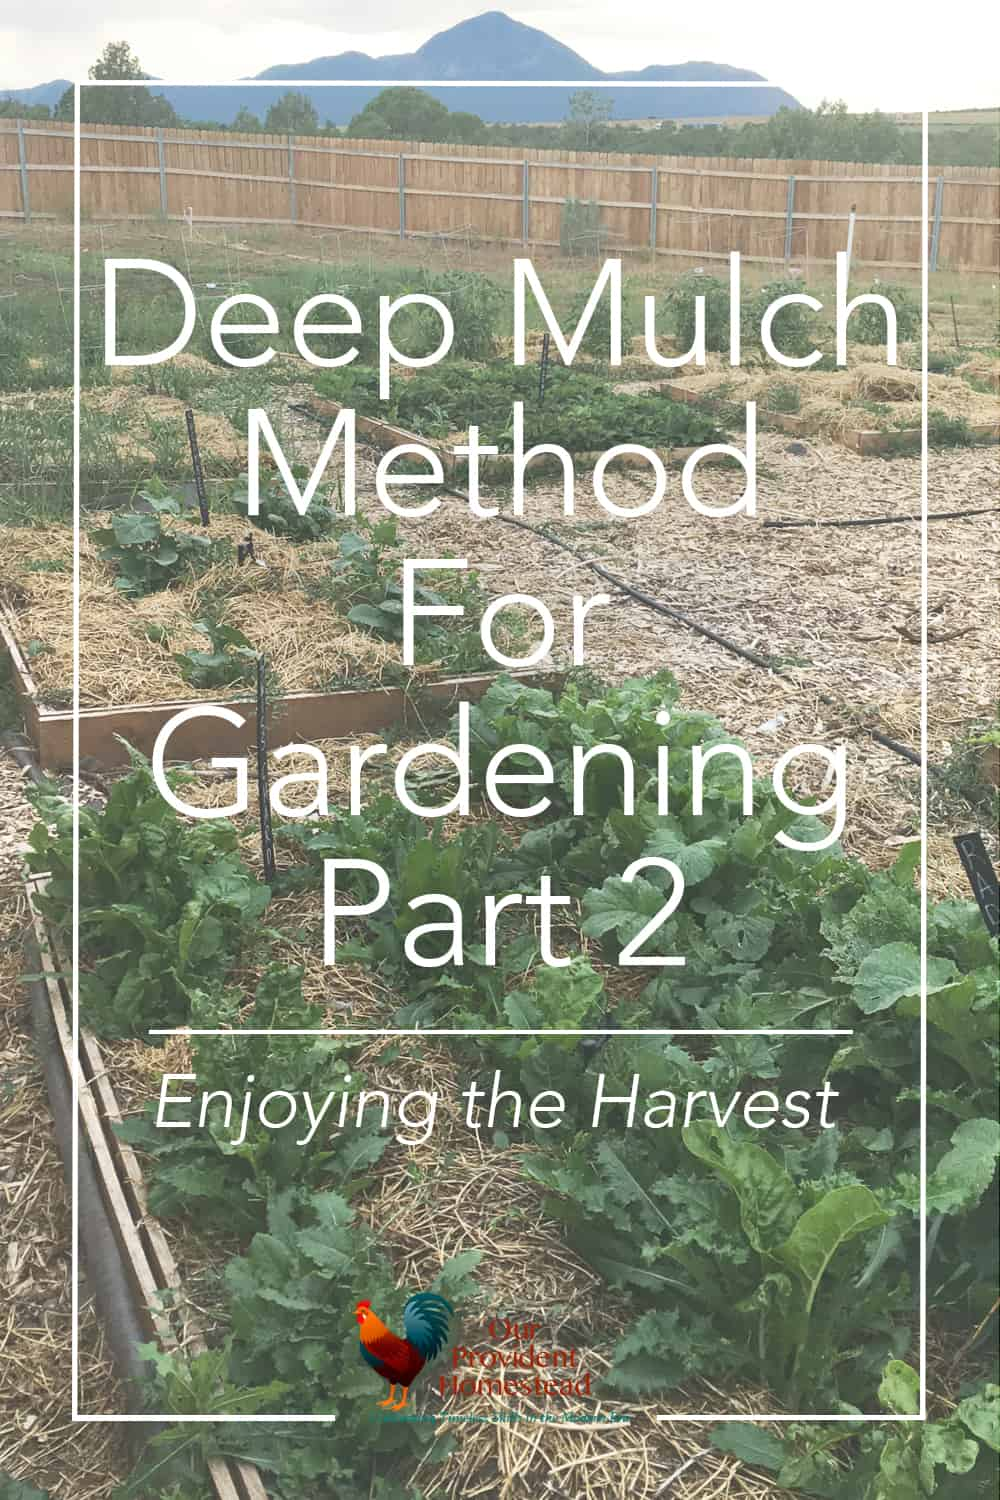 Are weeds your garden's worst enemy? Click here to see how using the deep mulch method for gardening helped us enjoy the harvest this year. Deep Mulch Method | Gardening | Enjoying the Harvest